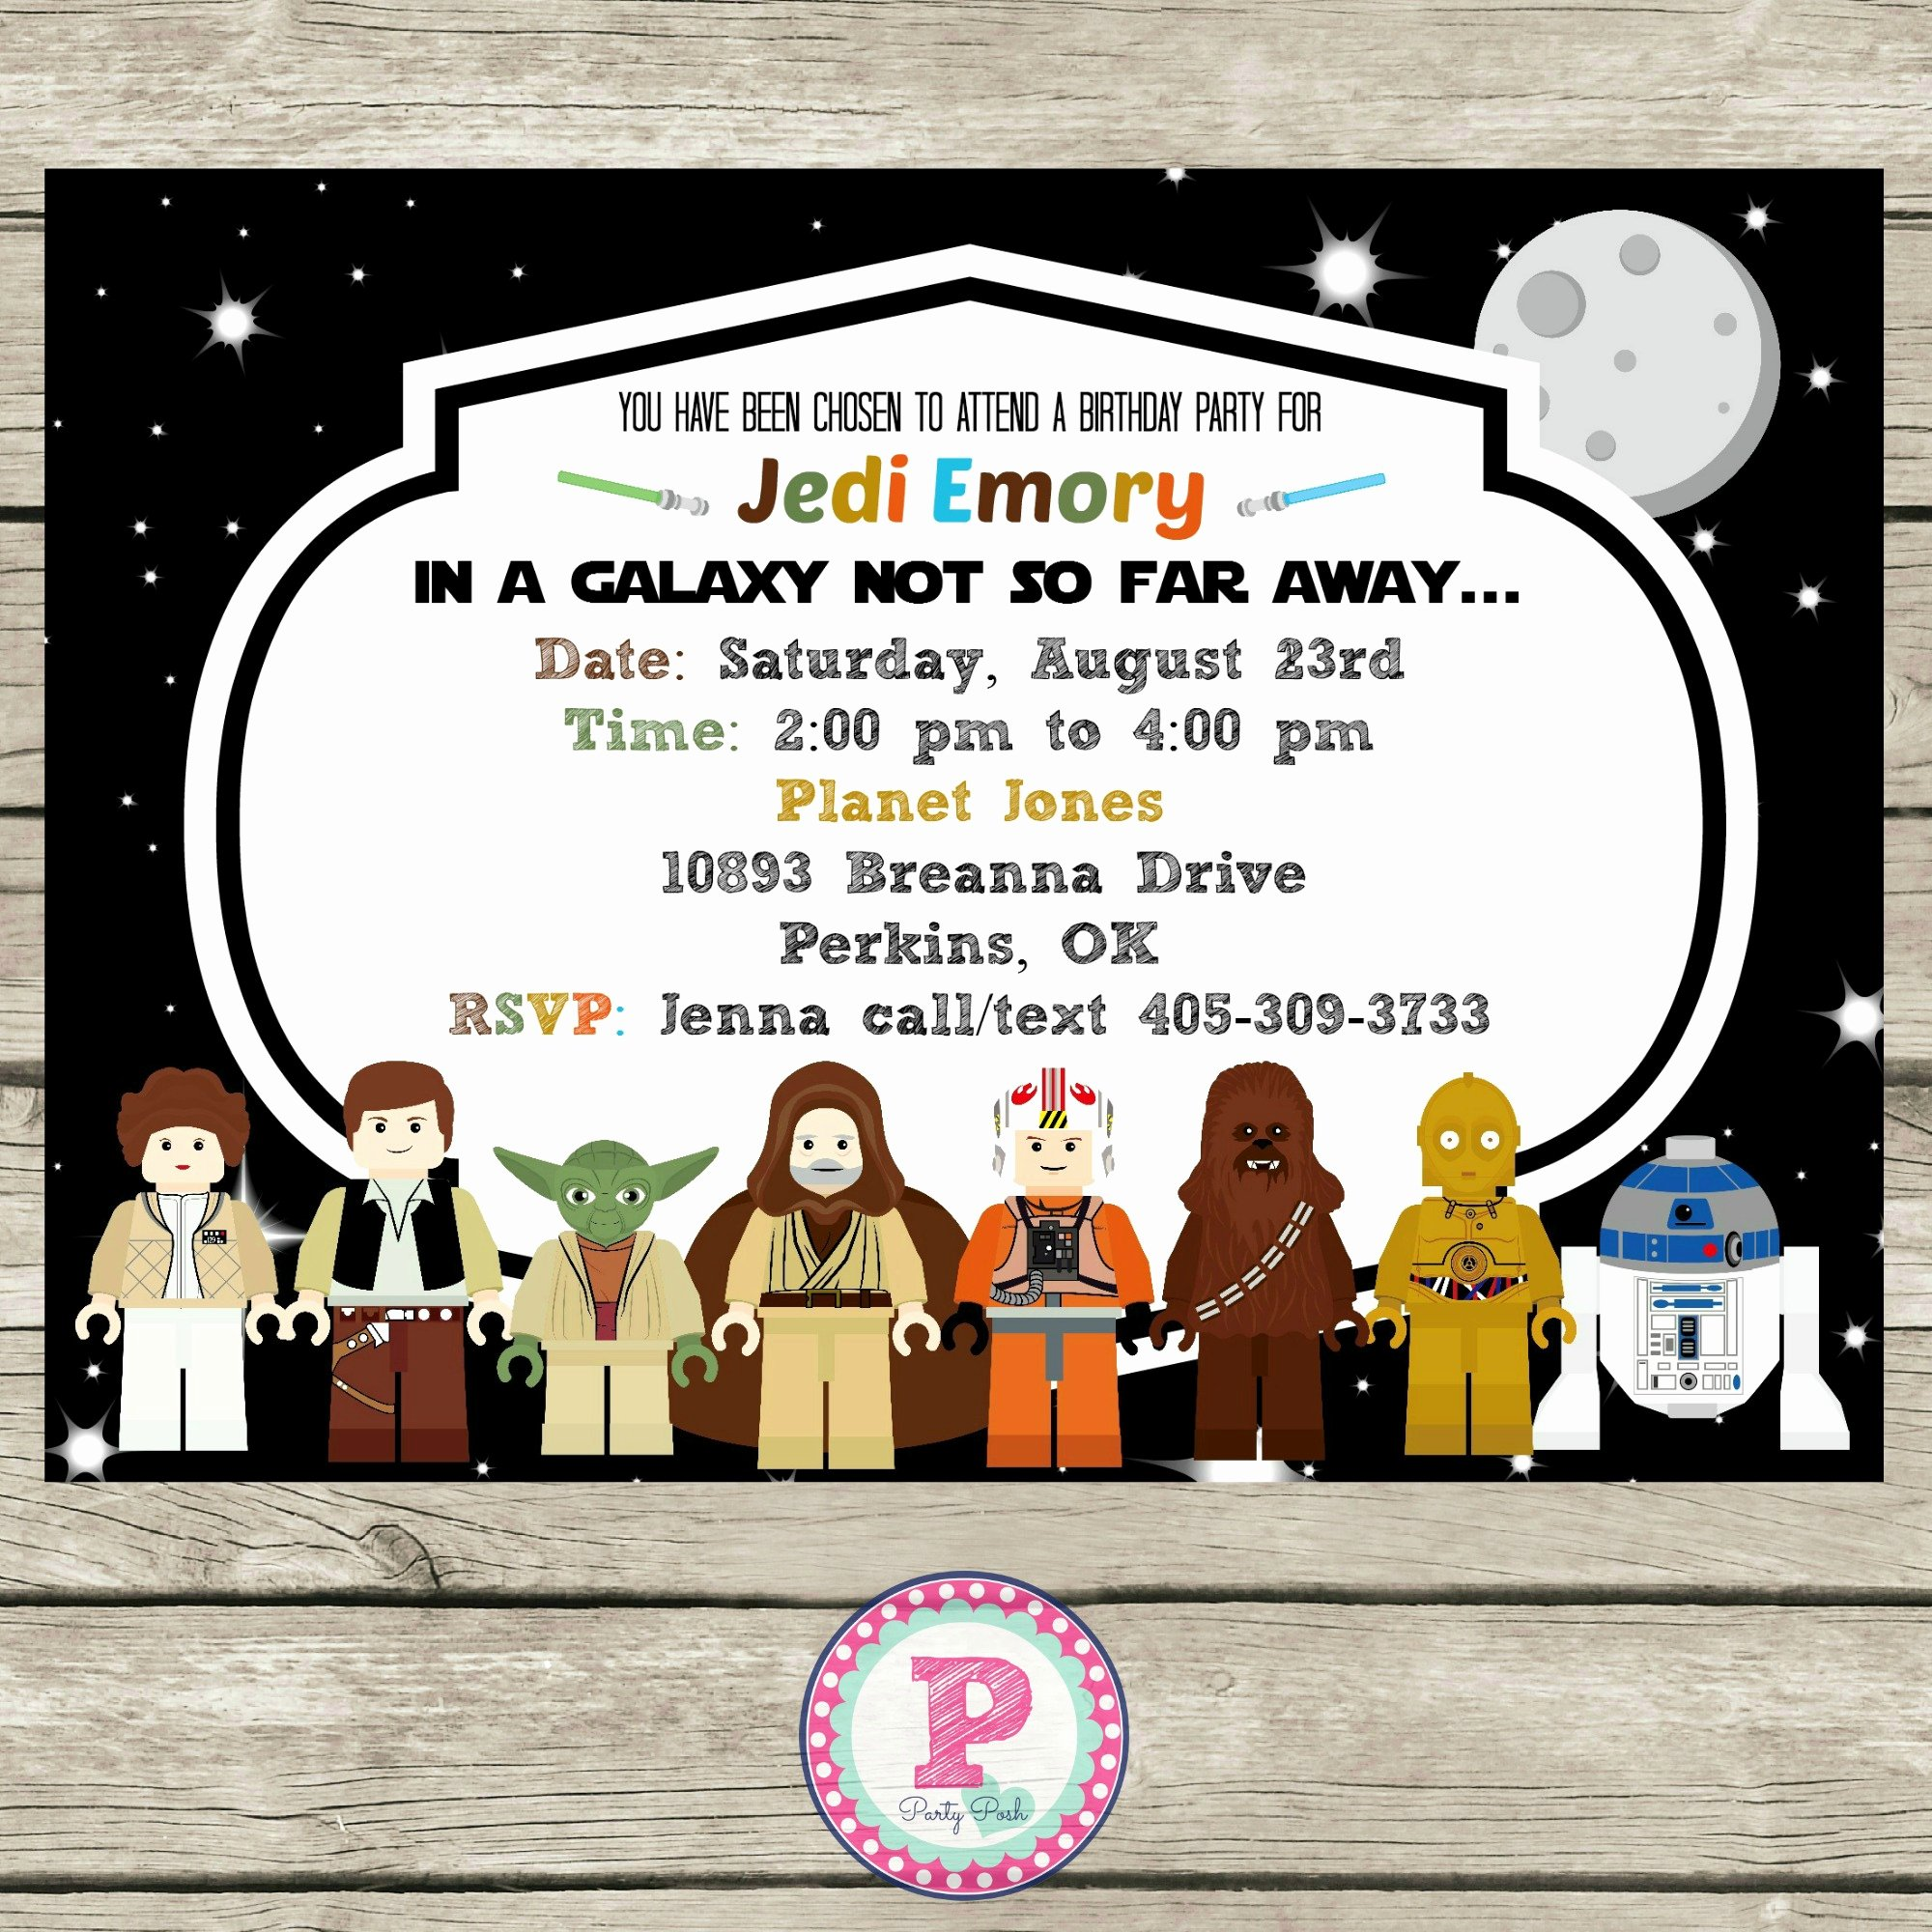 Star Wars Birthday Invitations Luxury Star Wars Lego Birthday Party Ideas Invitations